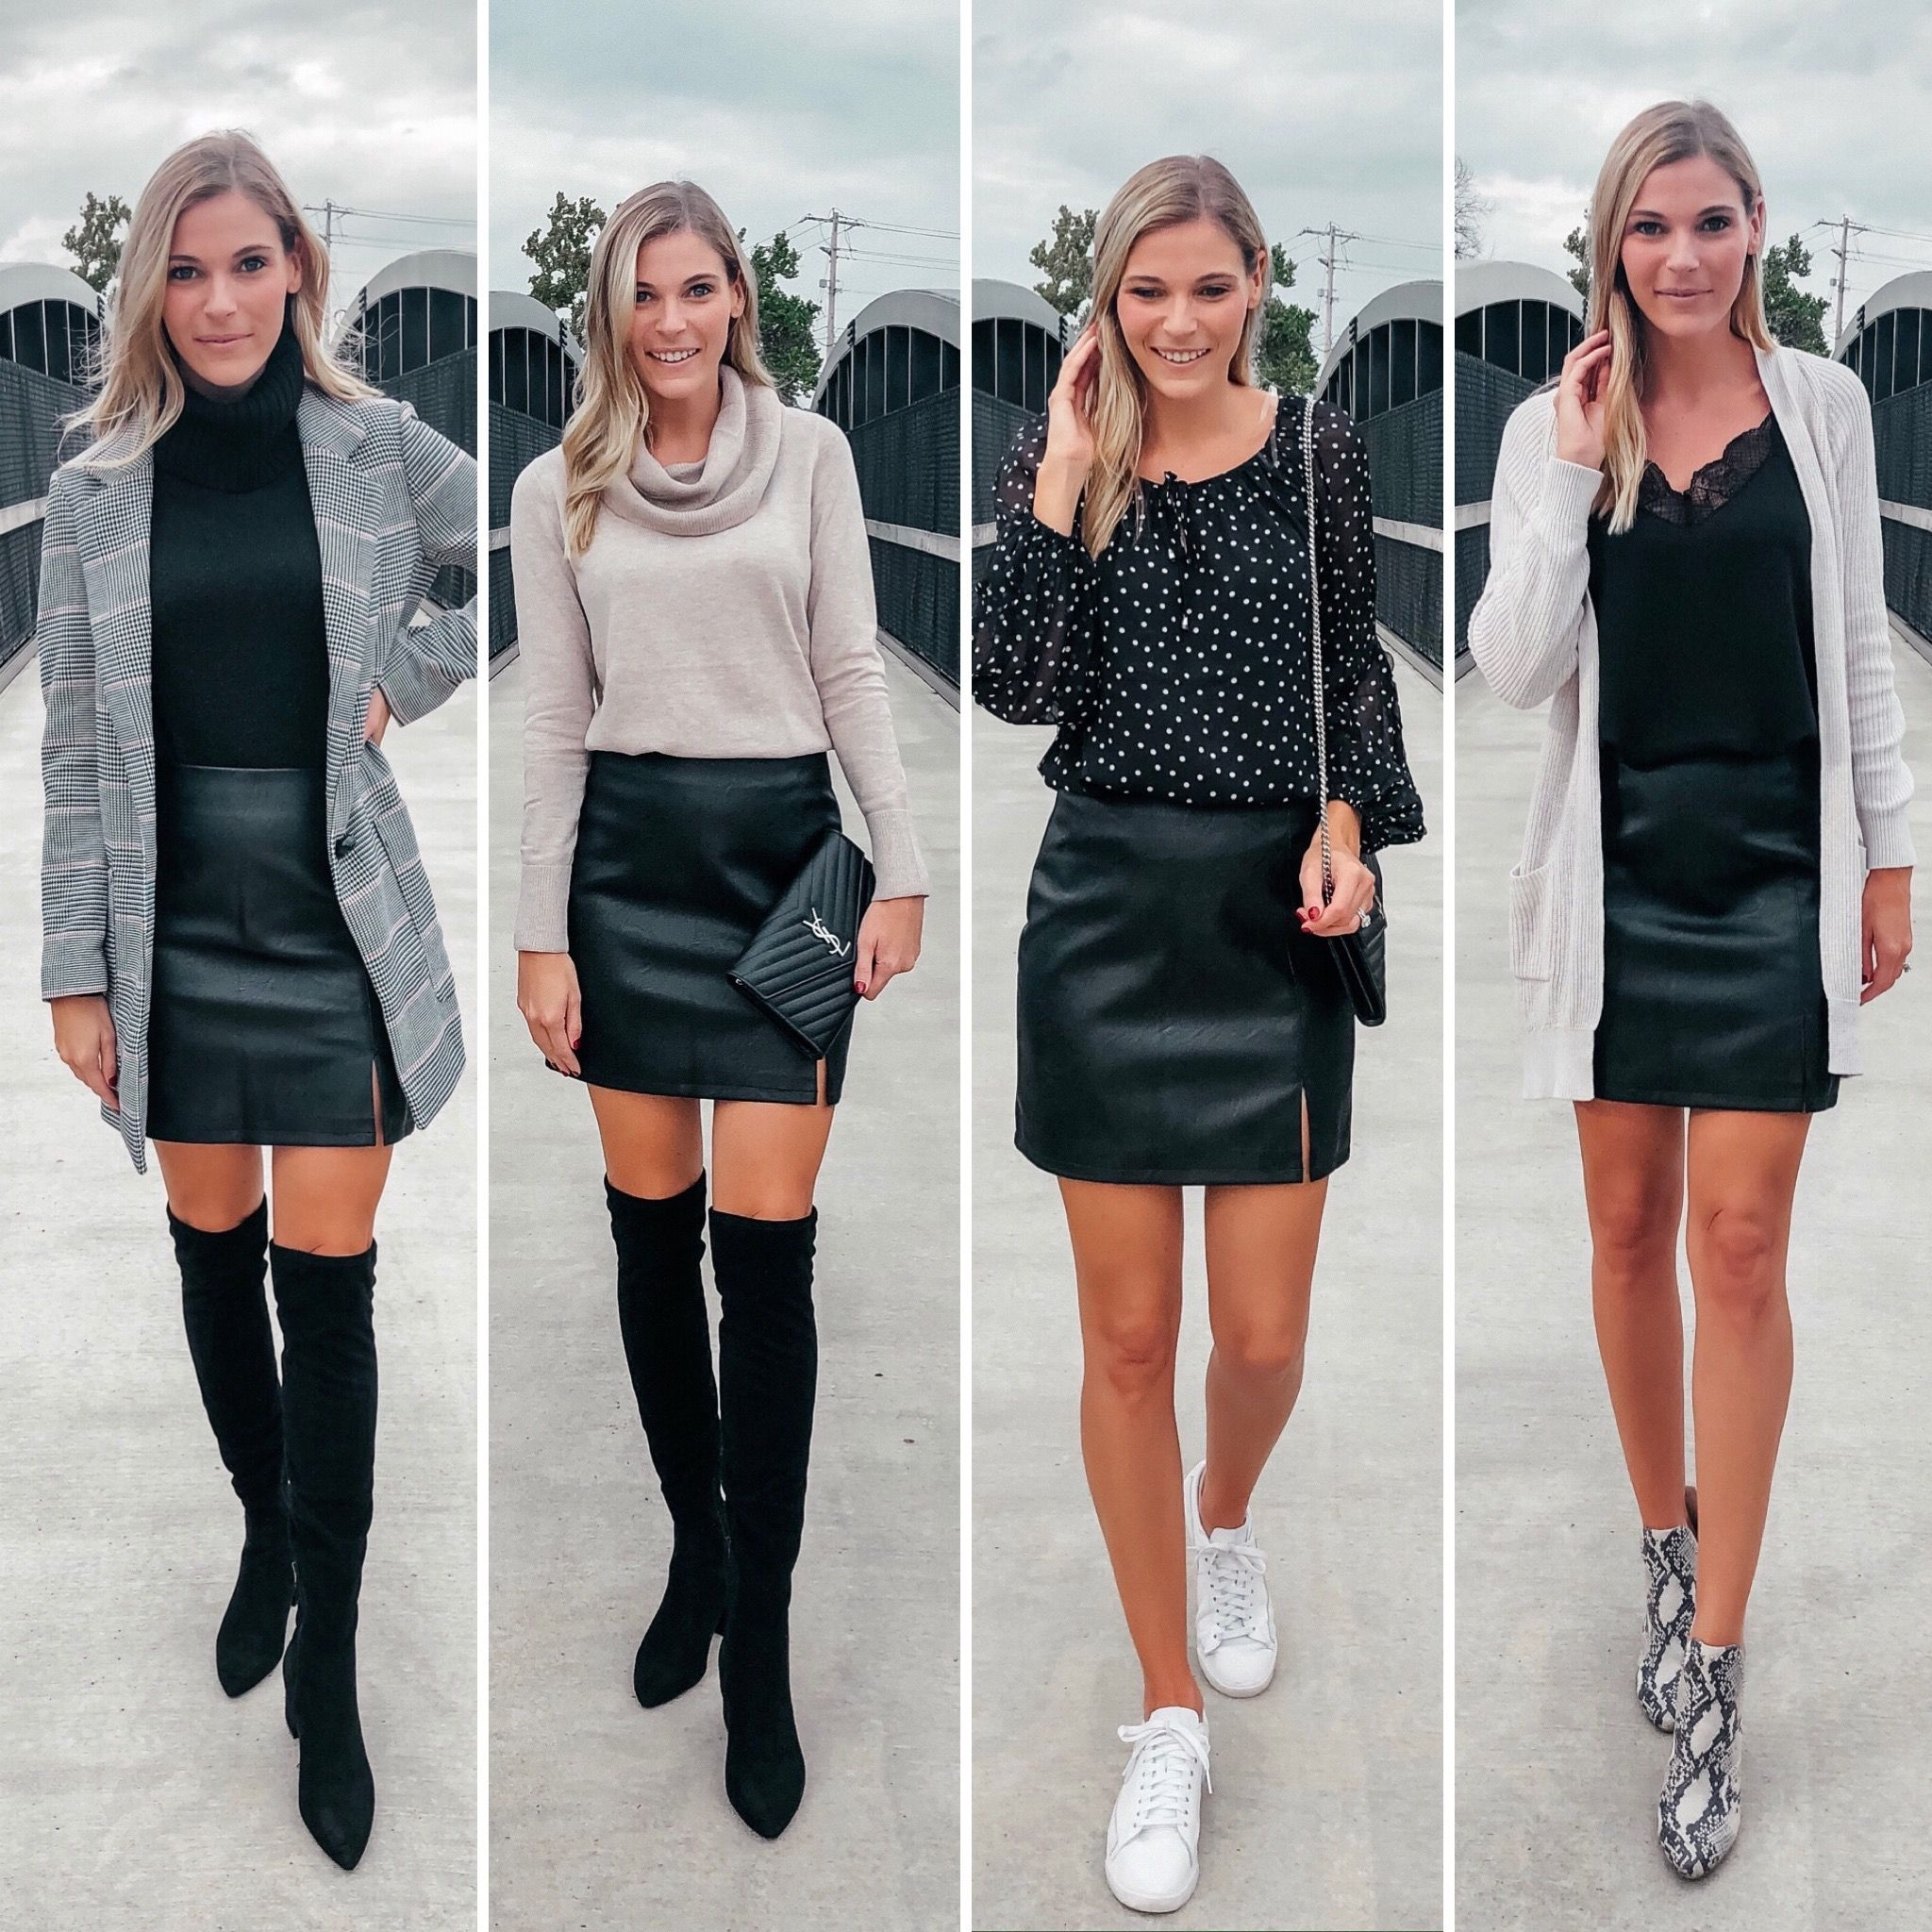 Styling a faux leather mini skirt 20 ways   Mini skirt outfit night ...